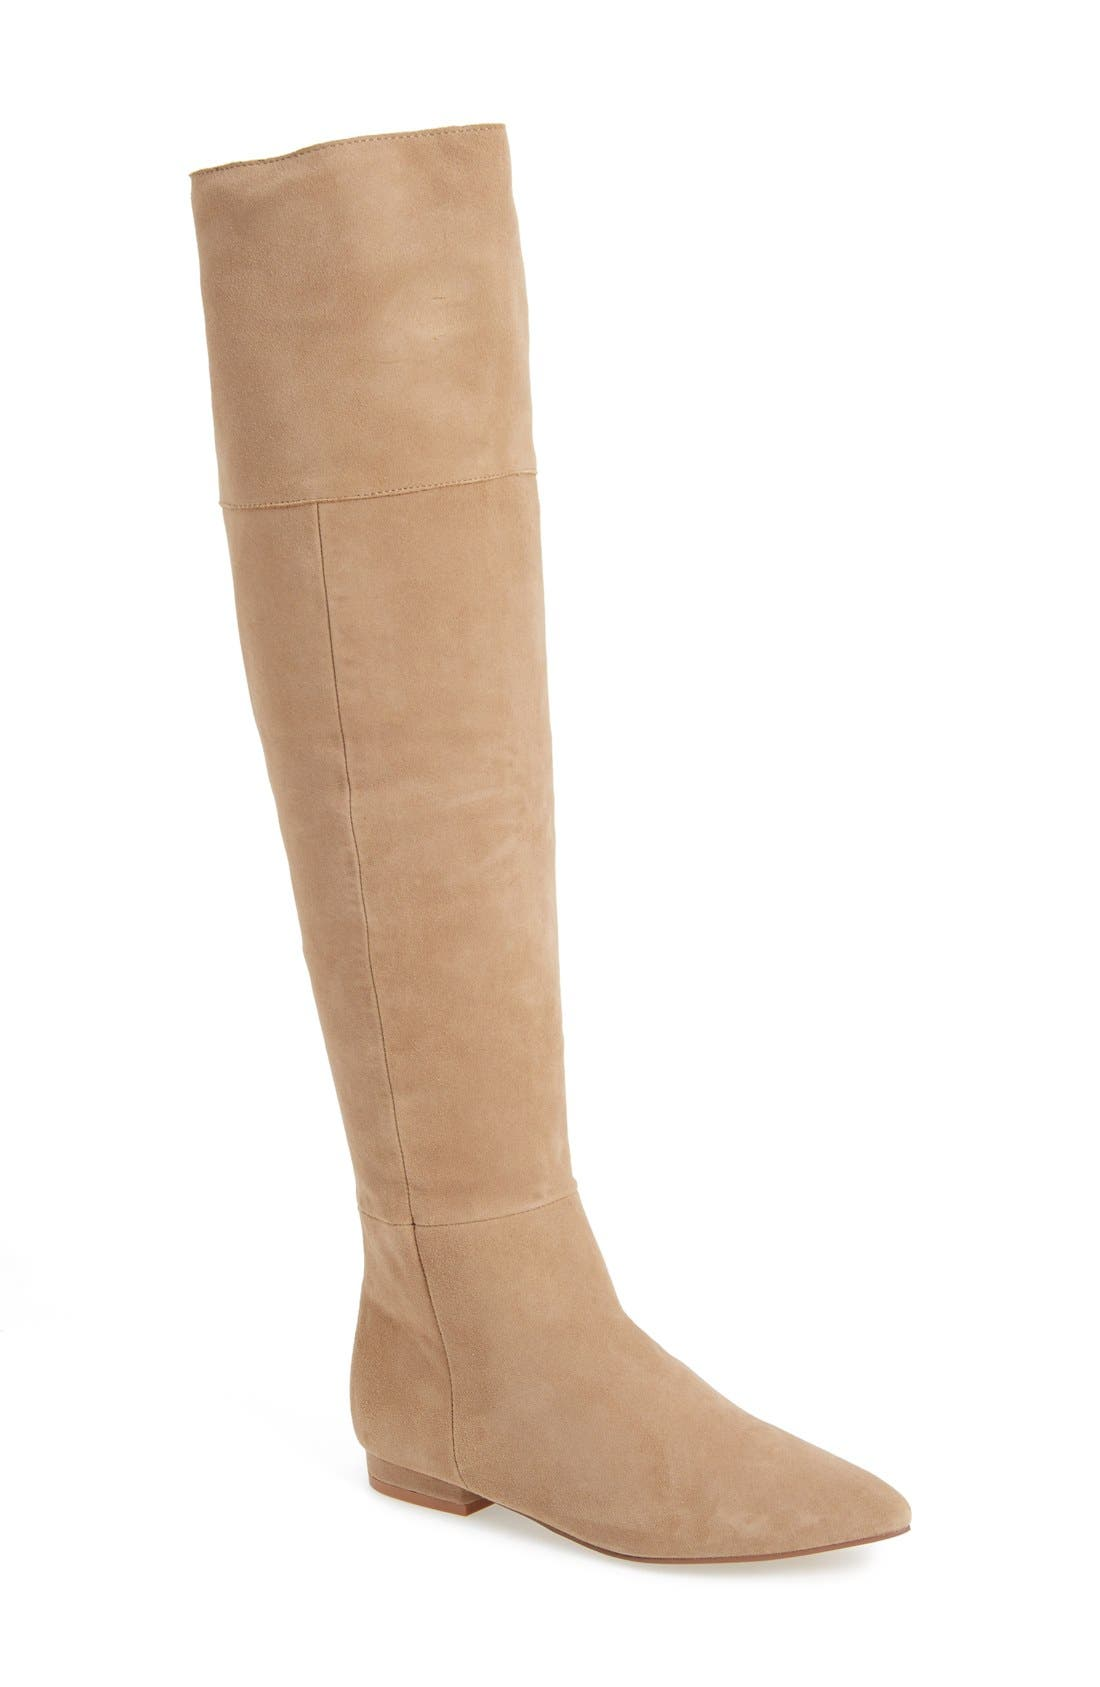 'York' Over the Knee Boot,                             Main thumbnail 1, color,                             250